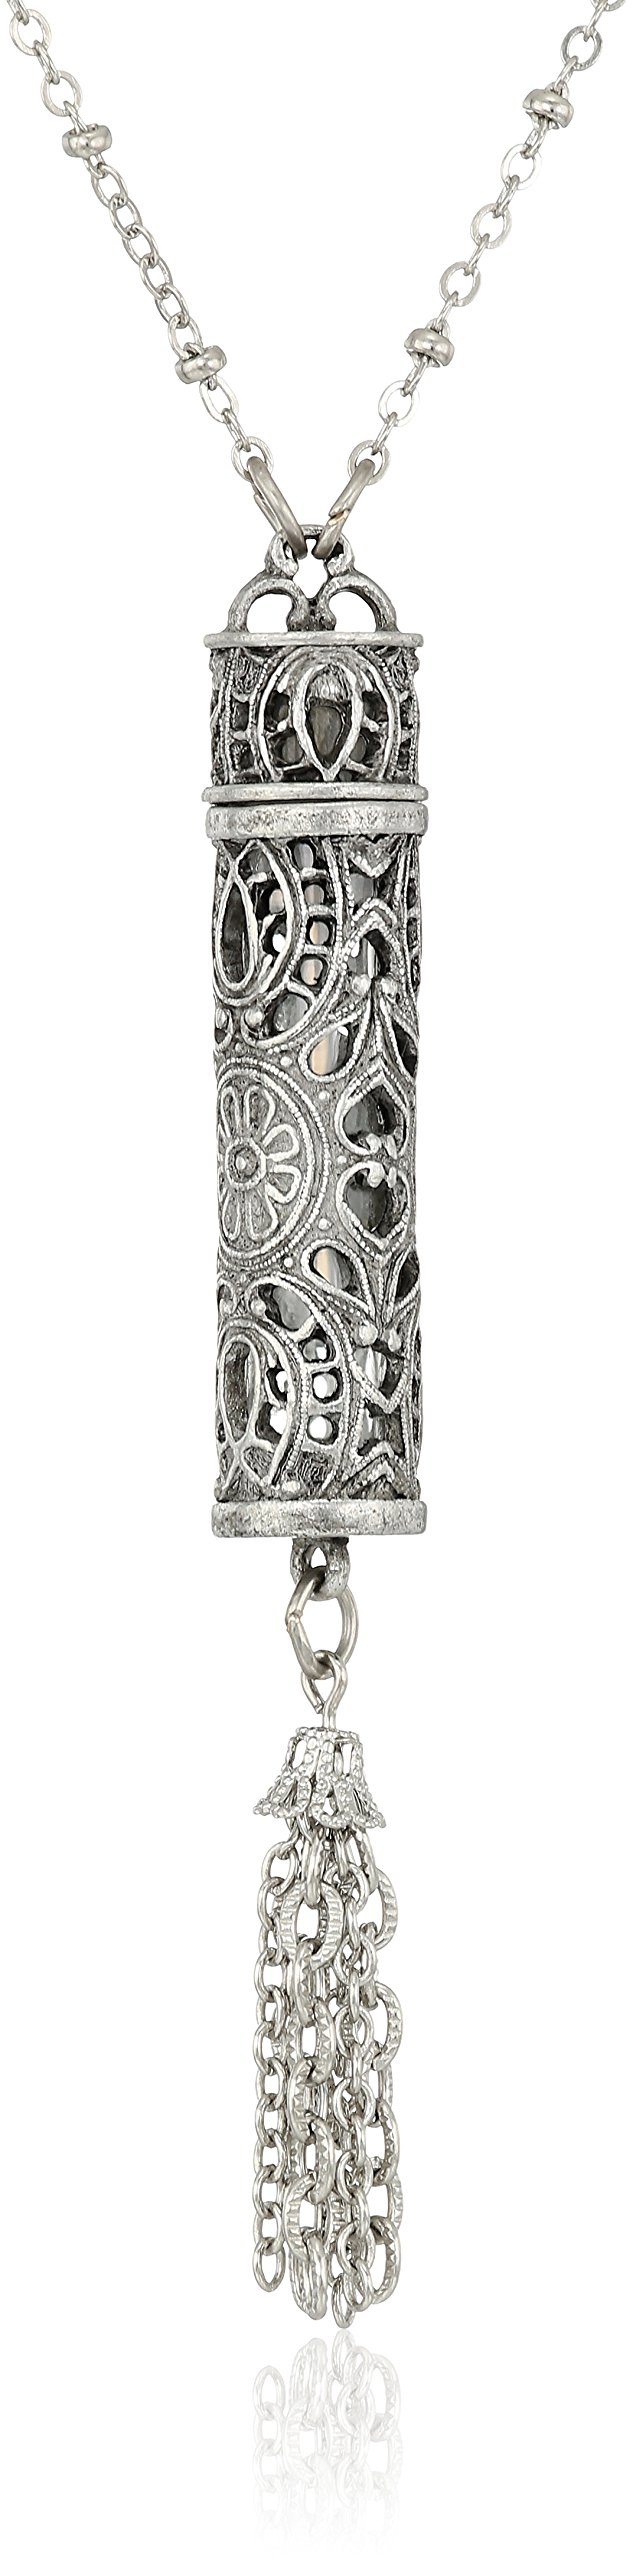 1928 Jewelry Womens Pewter Filigree Vial with Tassle Necklace Pendant Enhancer, 28 by 1928 Jewelry